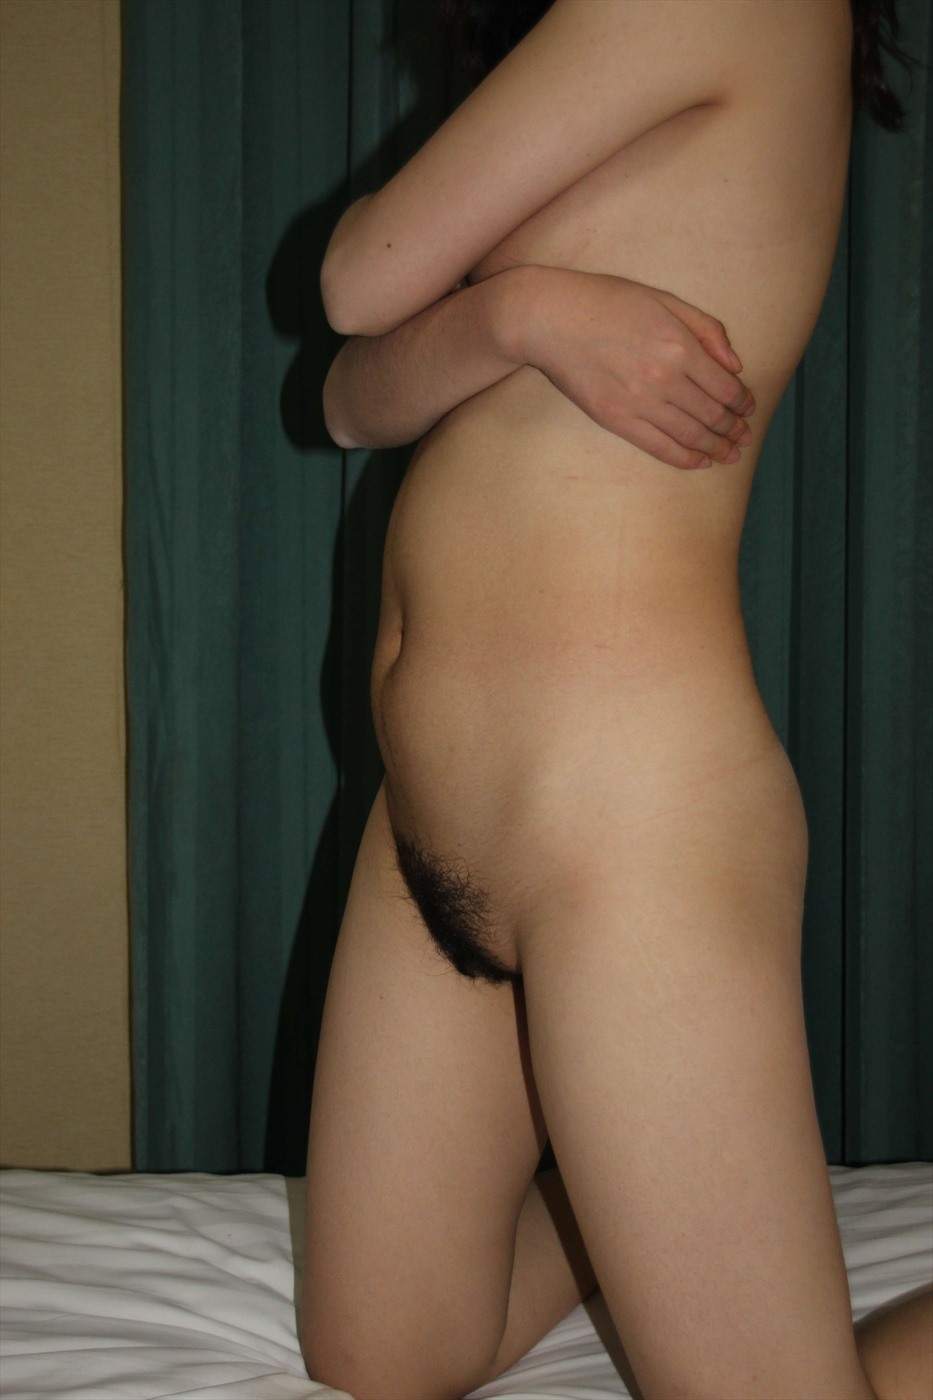 Chinese Nude Maomao « IMG_1258 « Free Erotic Pictures ...